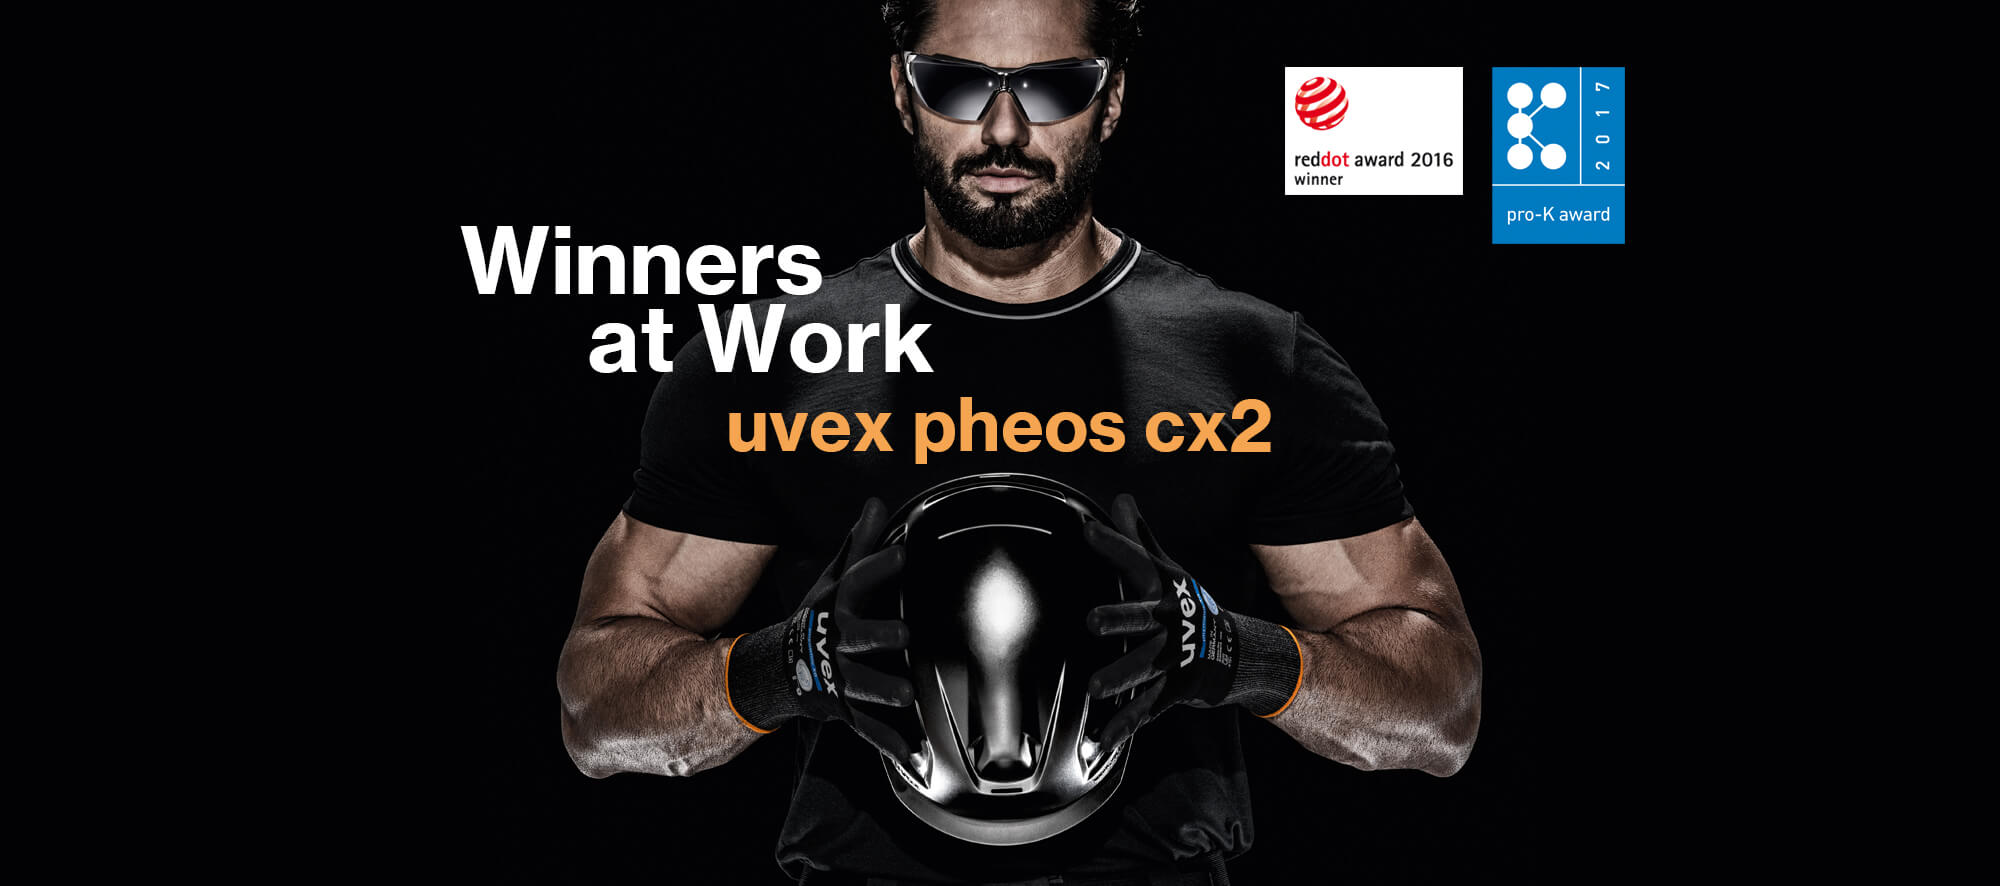 Winners at work - uvex pheos cx2